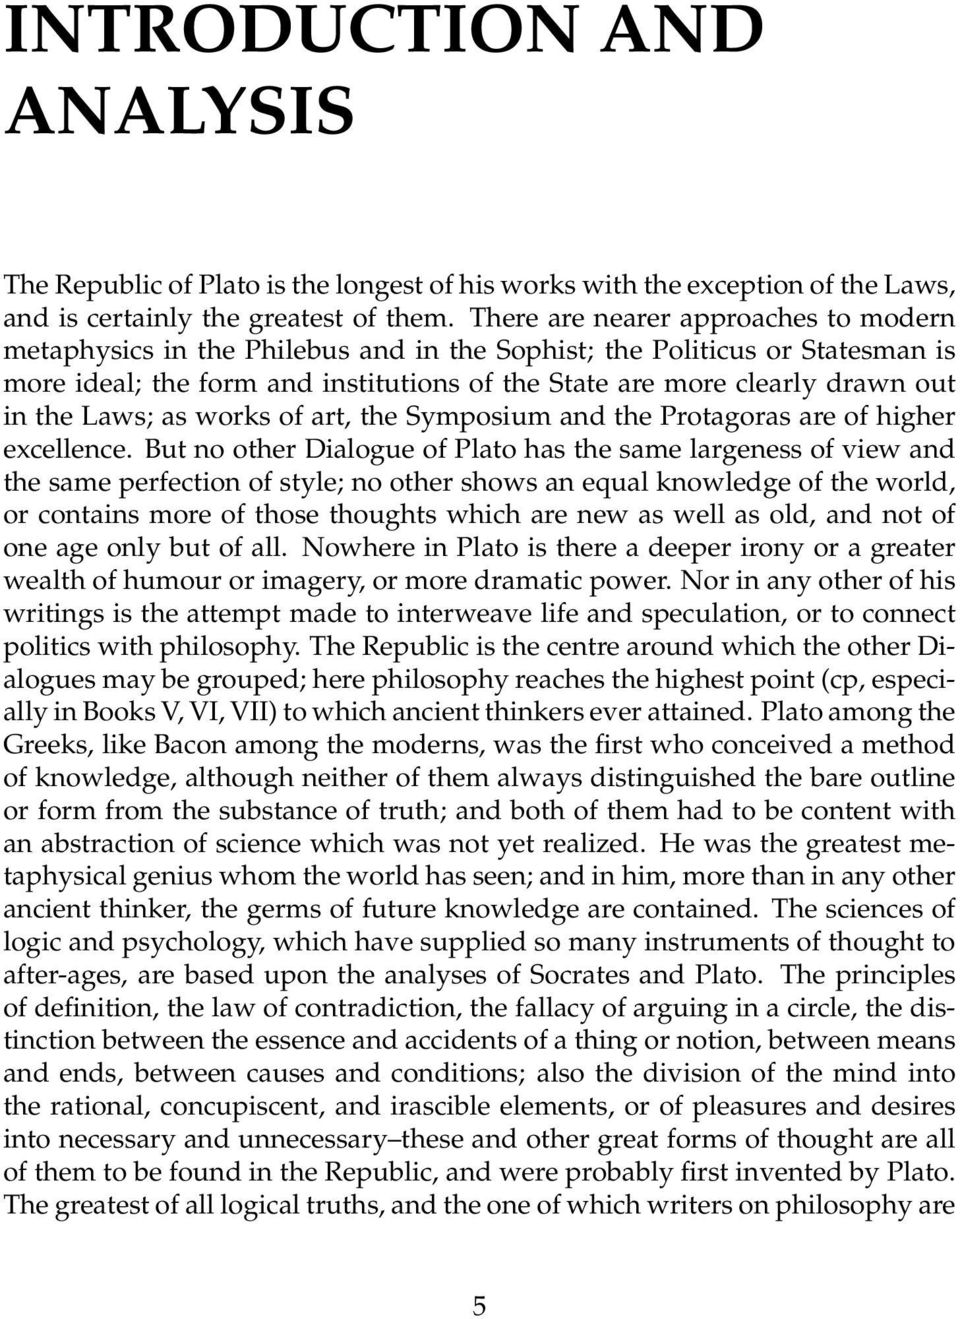 the Laws; as works of art, the Symposium and the Protagoras are of higher excellence.